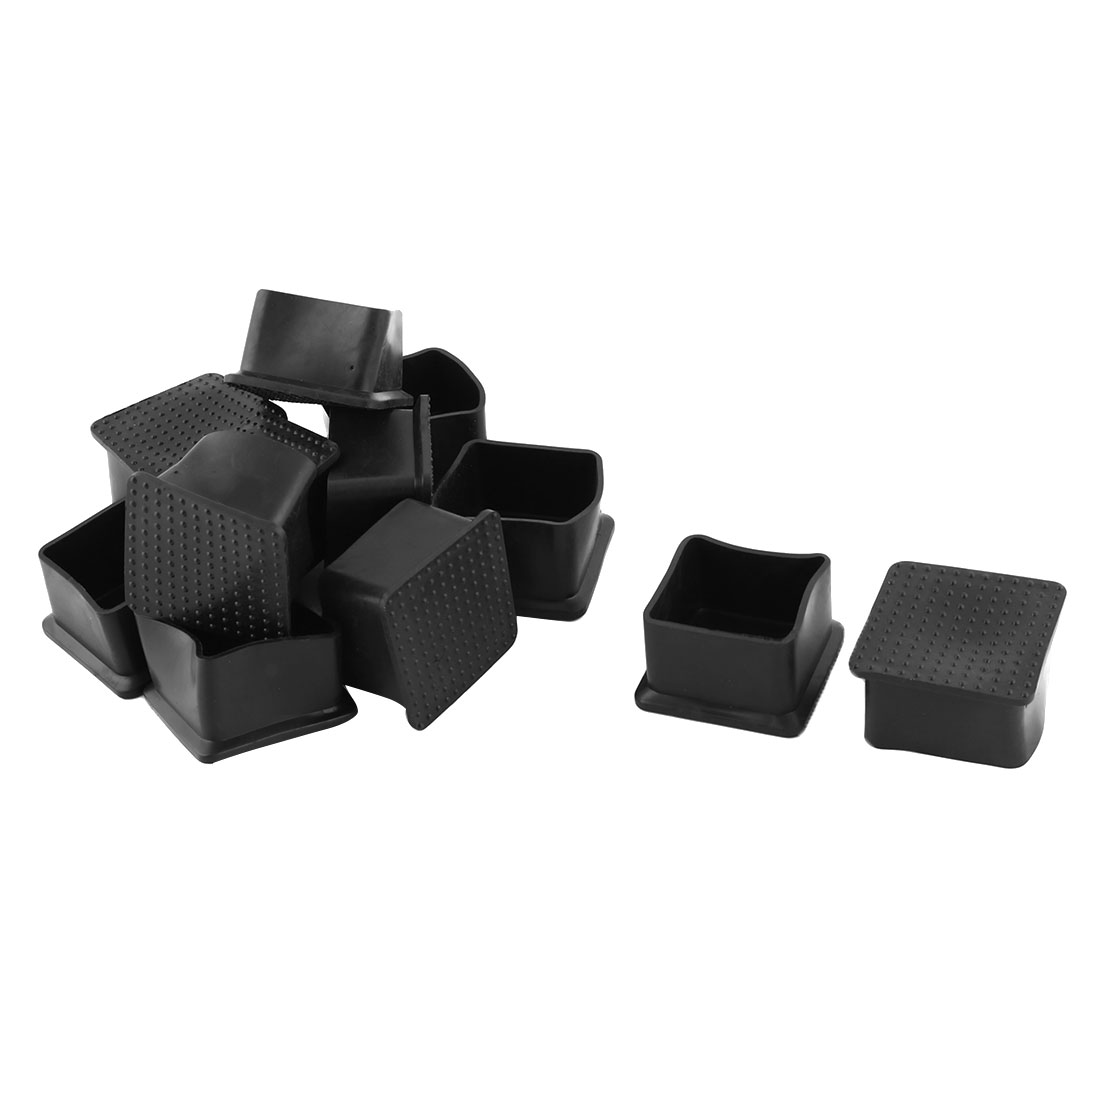 Office Rubber Anti-slip Furniture Chair Desk Foot Legs Cover 35mm x 35mm 12 Pcs